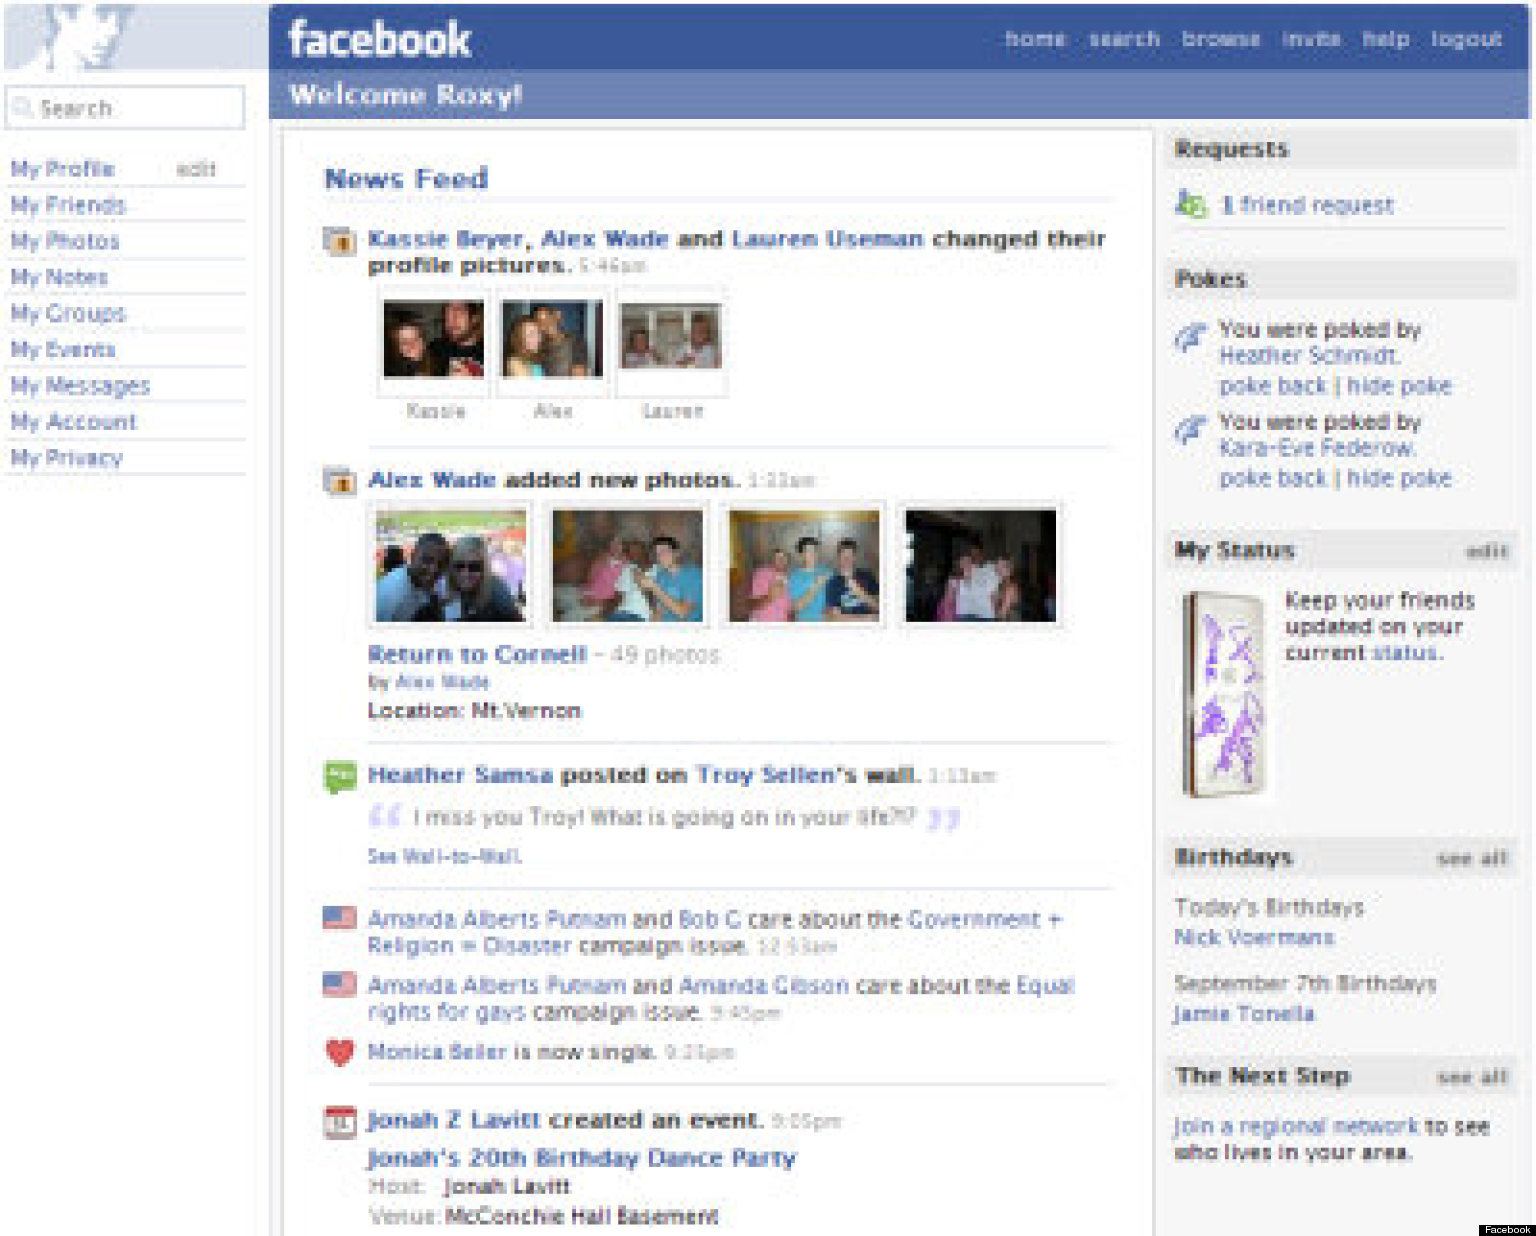 Facebook news feed timeline a look at changes through the years huffpost